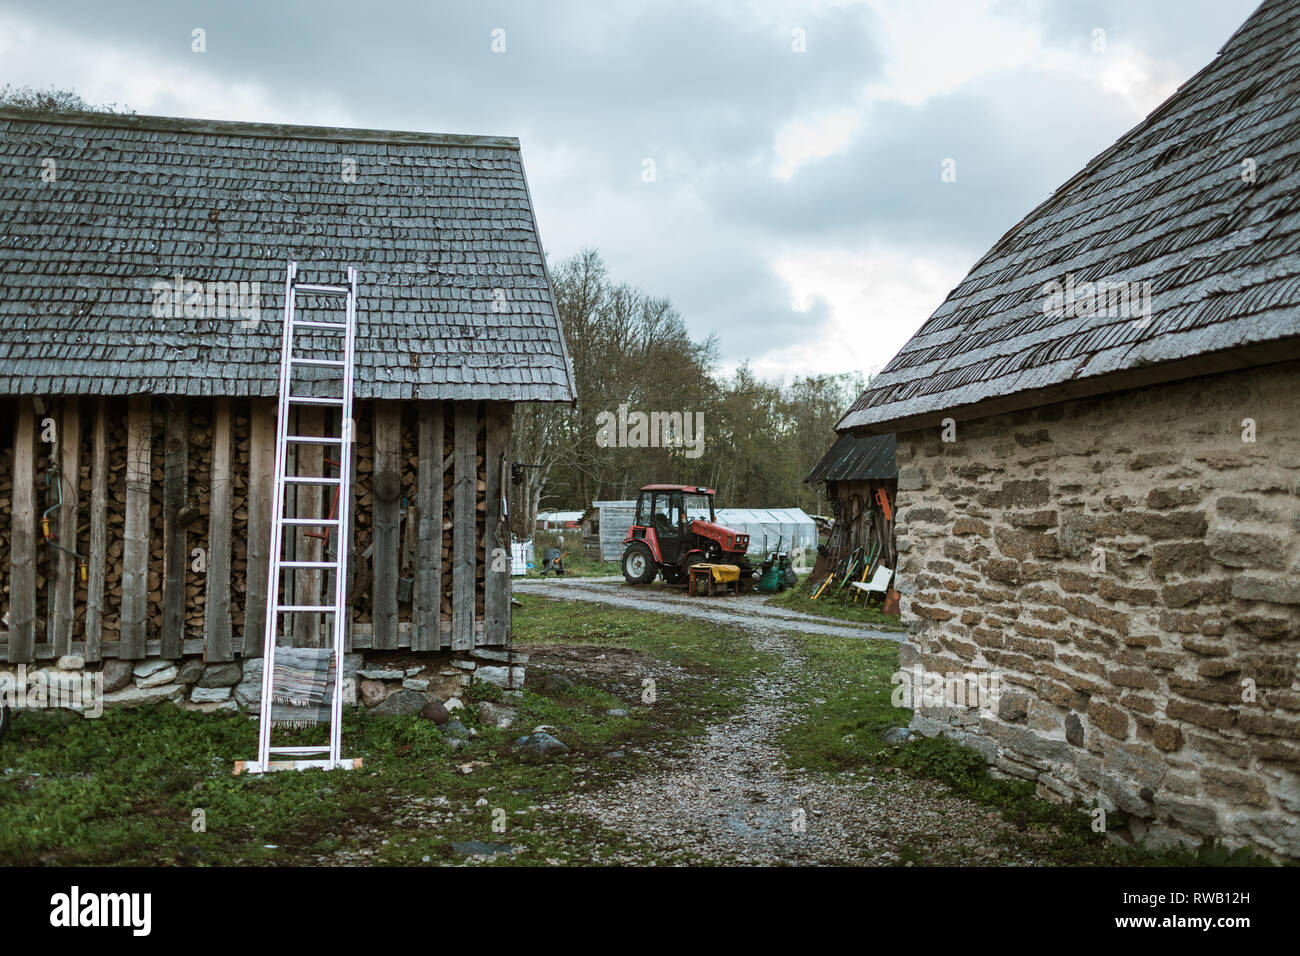 Farm buildings with various agriculture equipment and tractor. - Stock Image